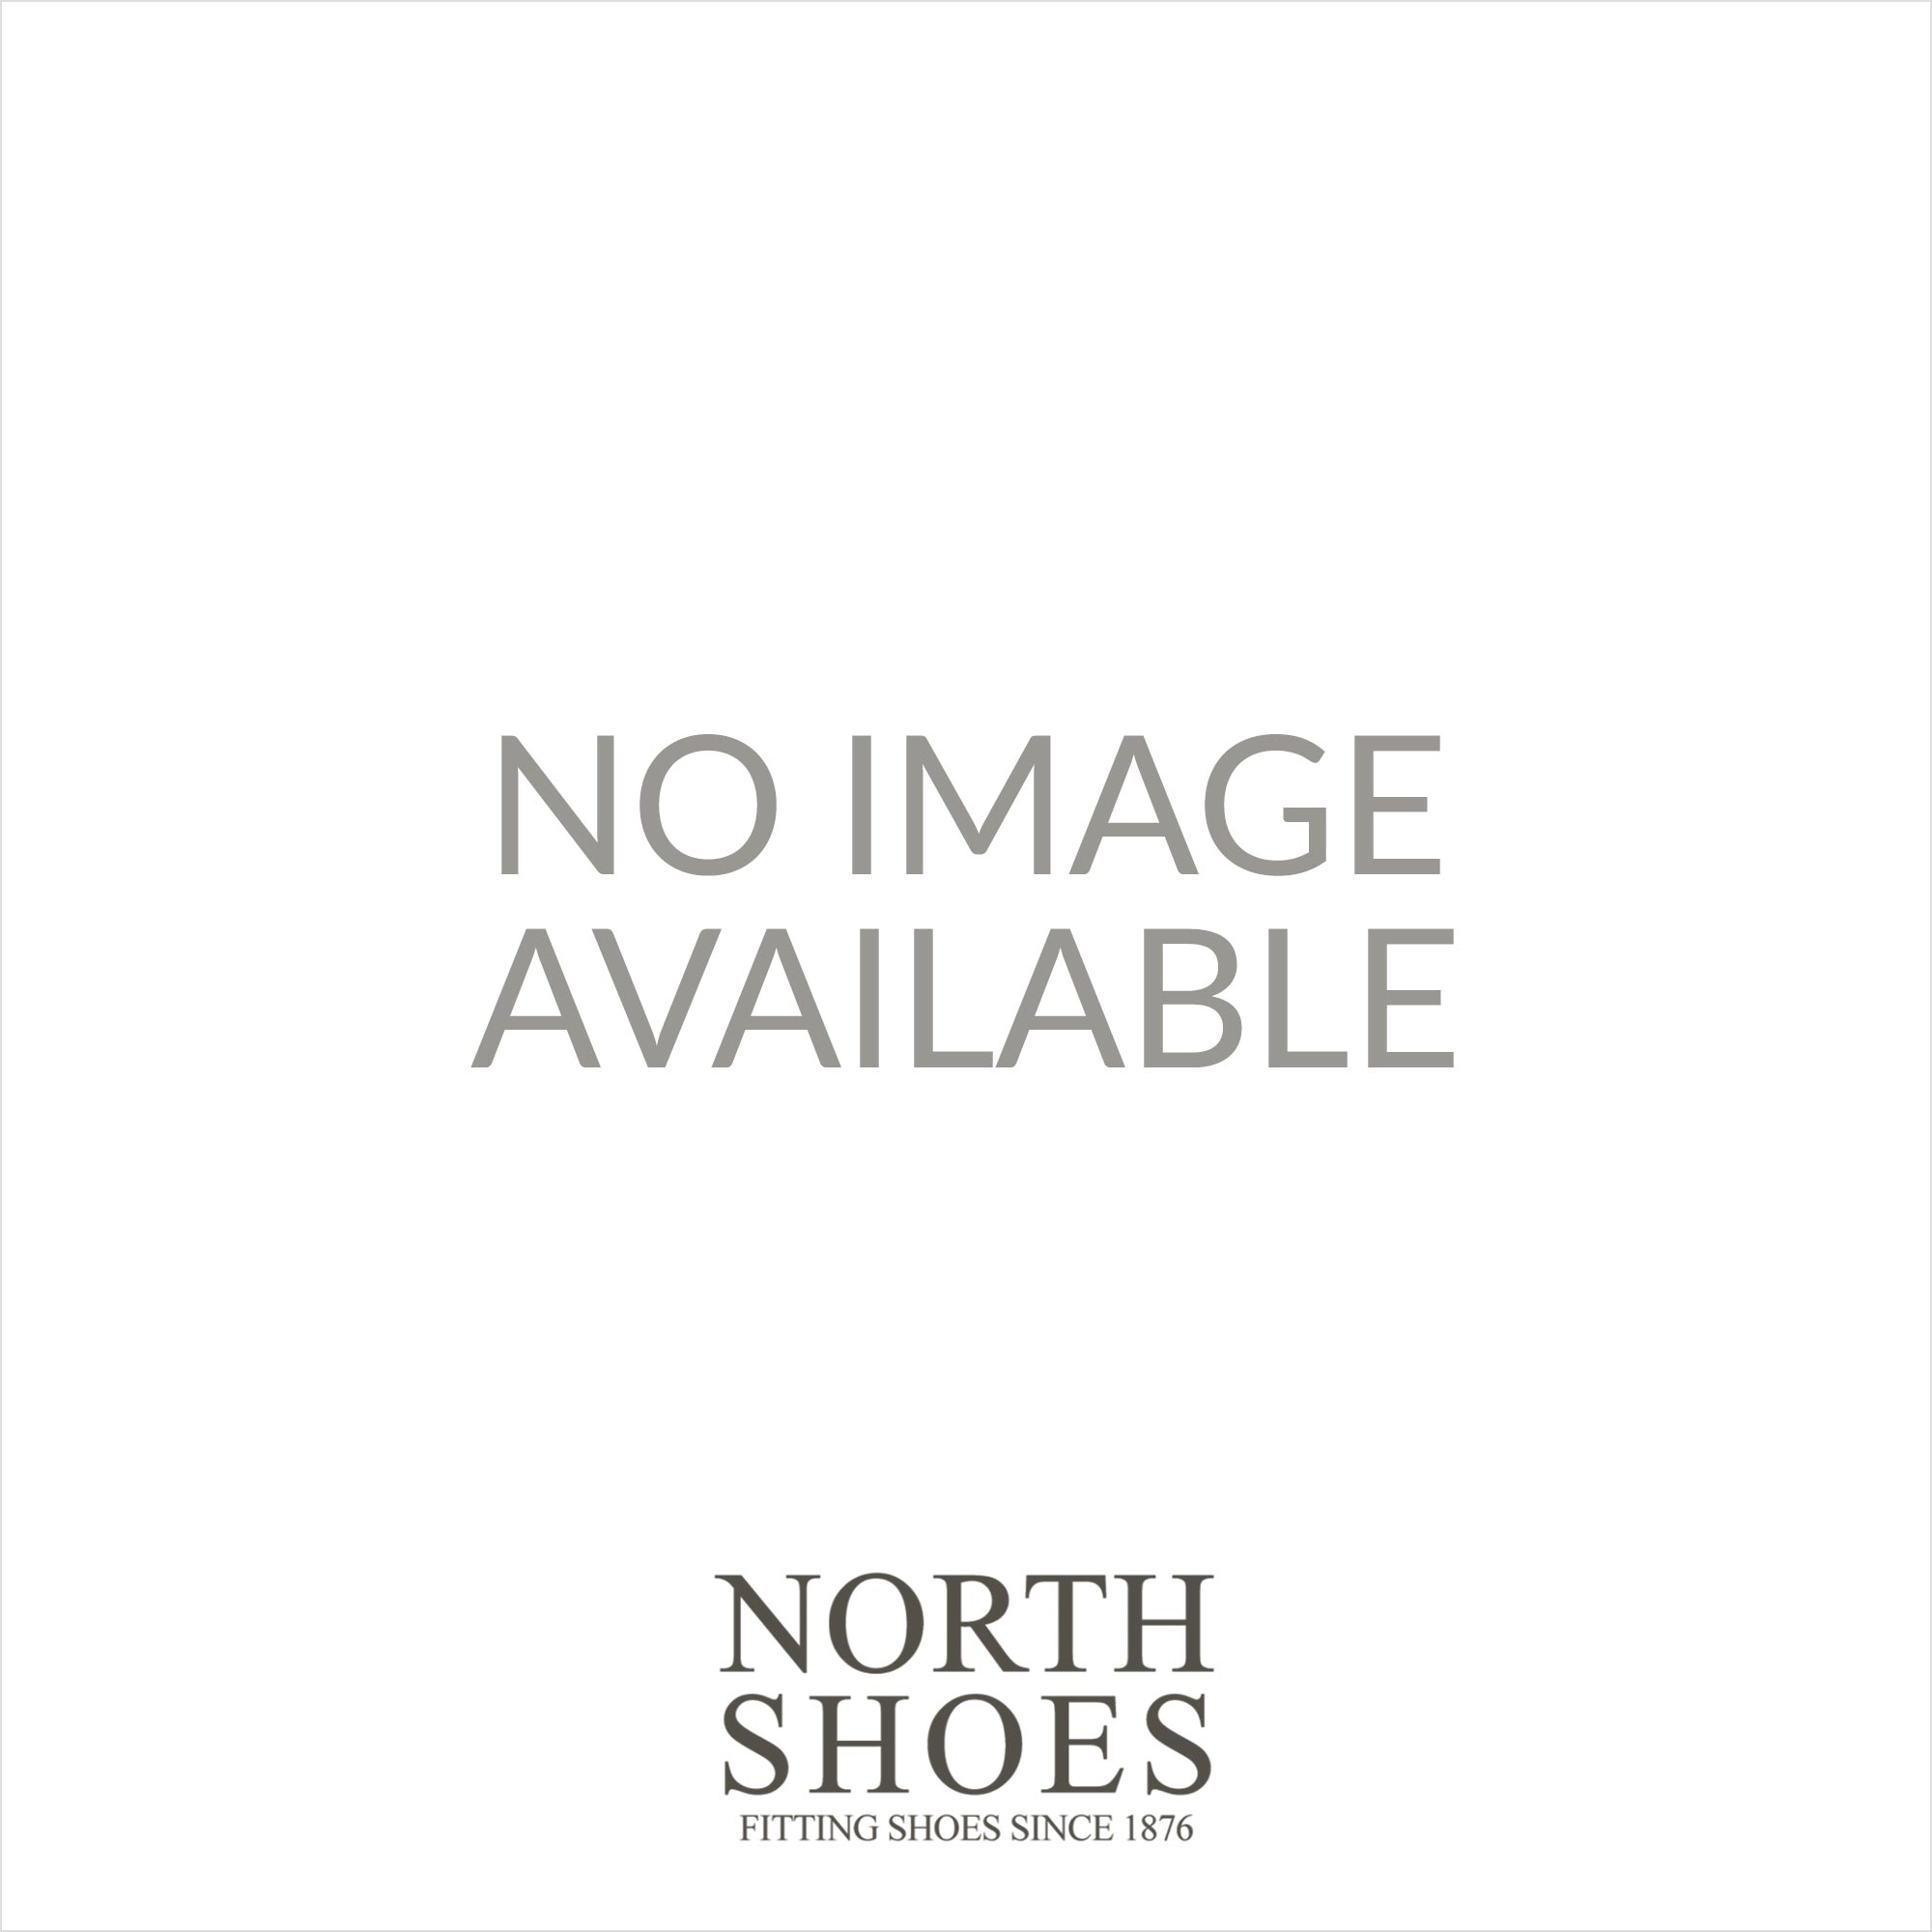 31b10b7e51a0 ... Clarks Orabella Ivy Black Suede Leather Womens Heeled Slingback Sandal  ...